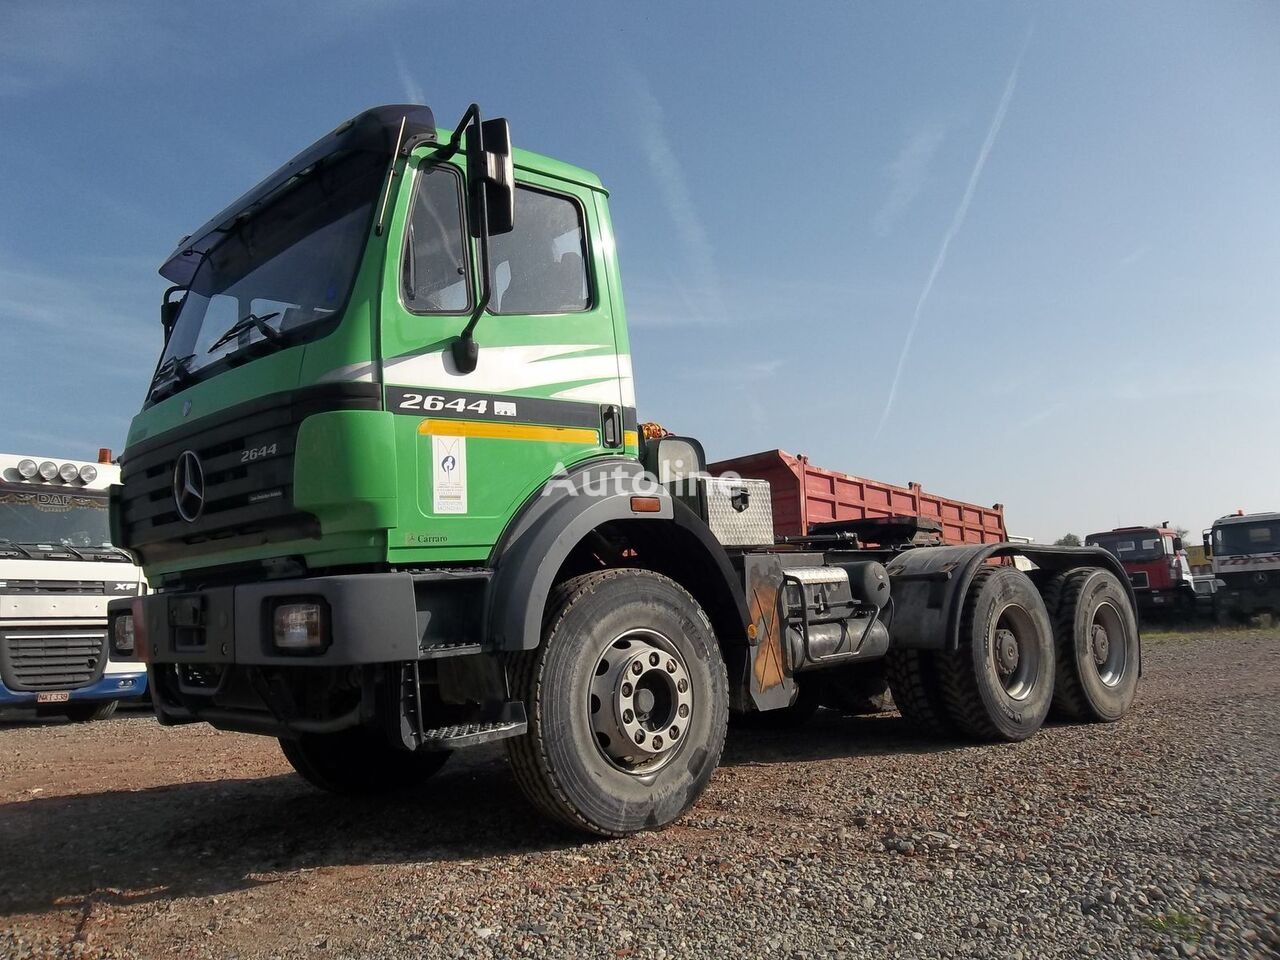 MERCEDES-BENZ 2644 - 6x4 tractor units for sale, truck tractor, truck  tractor unit from Belgium, buy tractor unit, VV14864